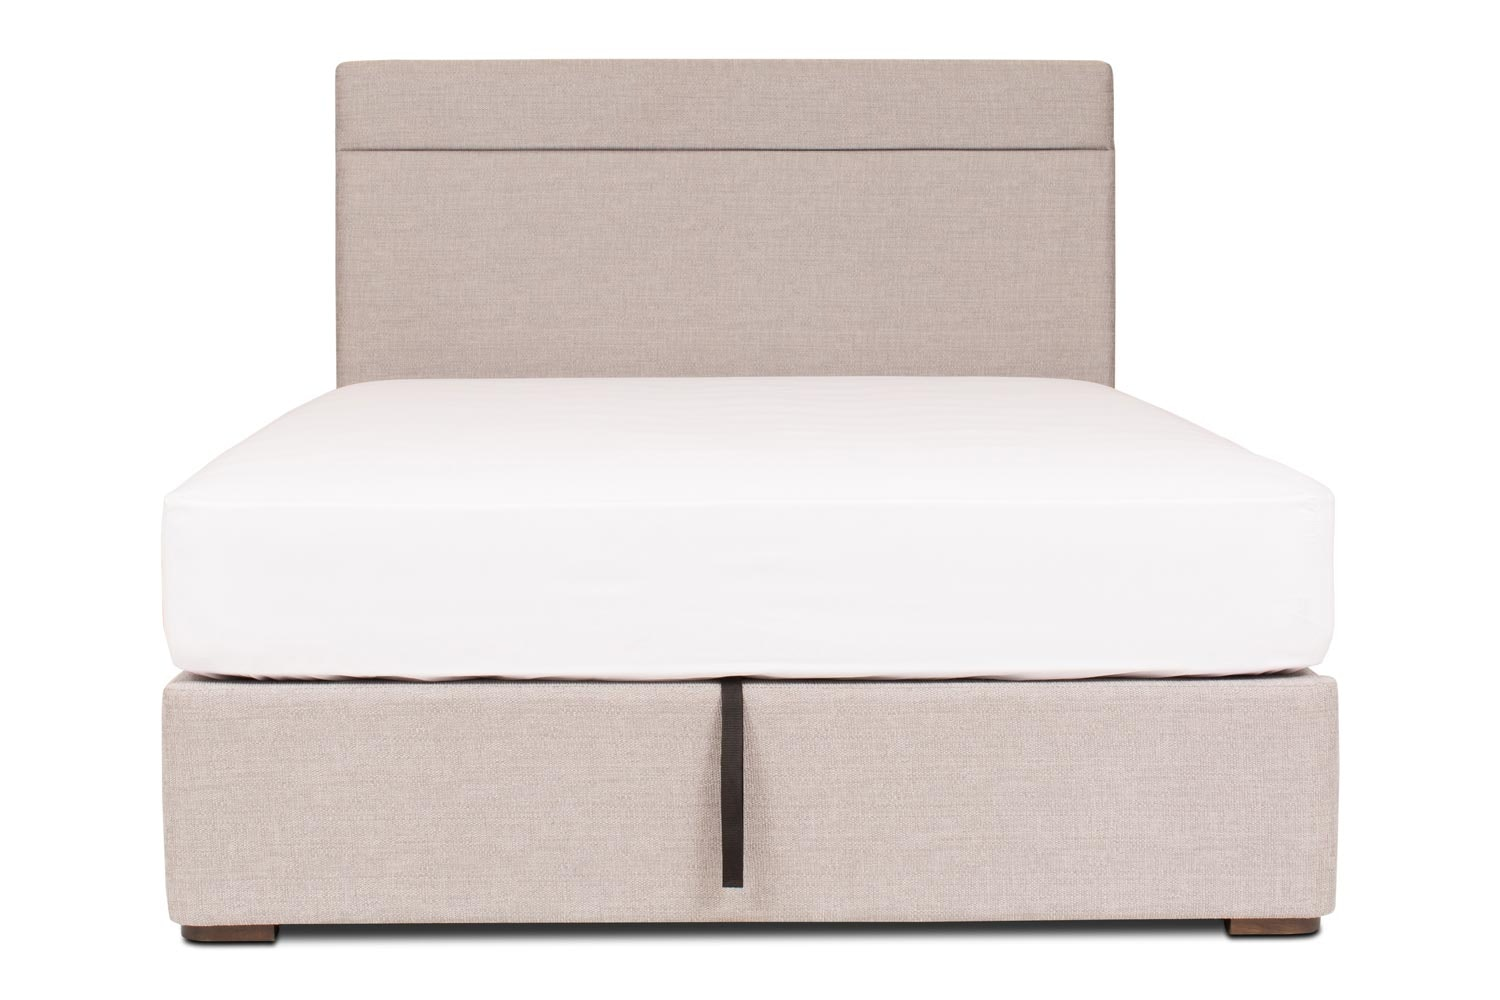 Duval Ottoman Bed with H Stitch Headboard | 6Ft | Grey